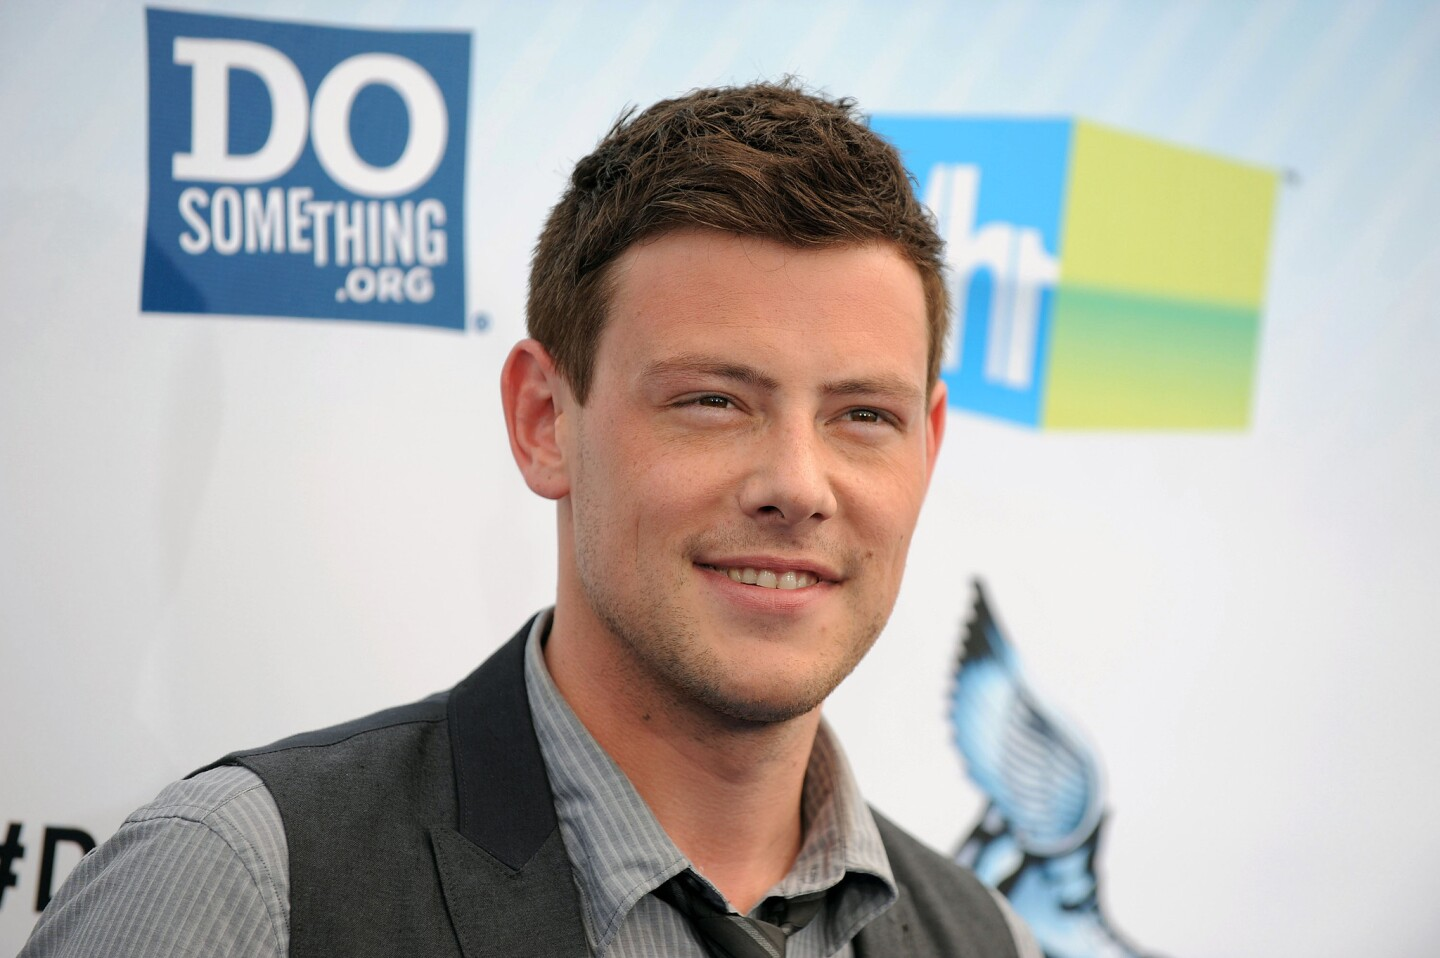 """Cory Monteith, star of the hit Fox series """"Glee,"""" was found dead in a Canadian hotel room, according to Vancouver police. The sudden death of the 31-year old Canadian actor came several months after he had voluntarily checked himself into a treatment facility for substance addiction."""